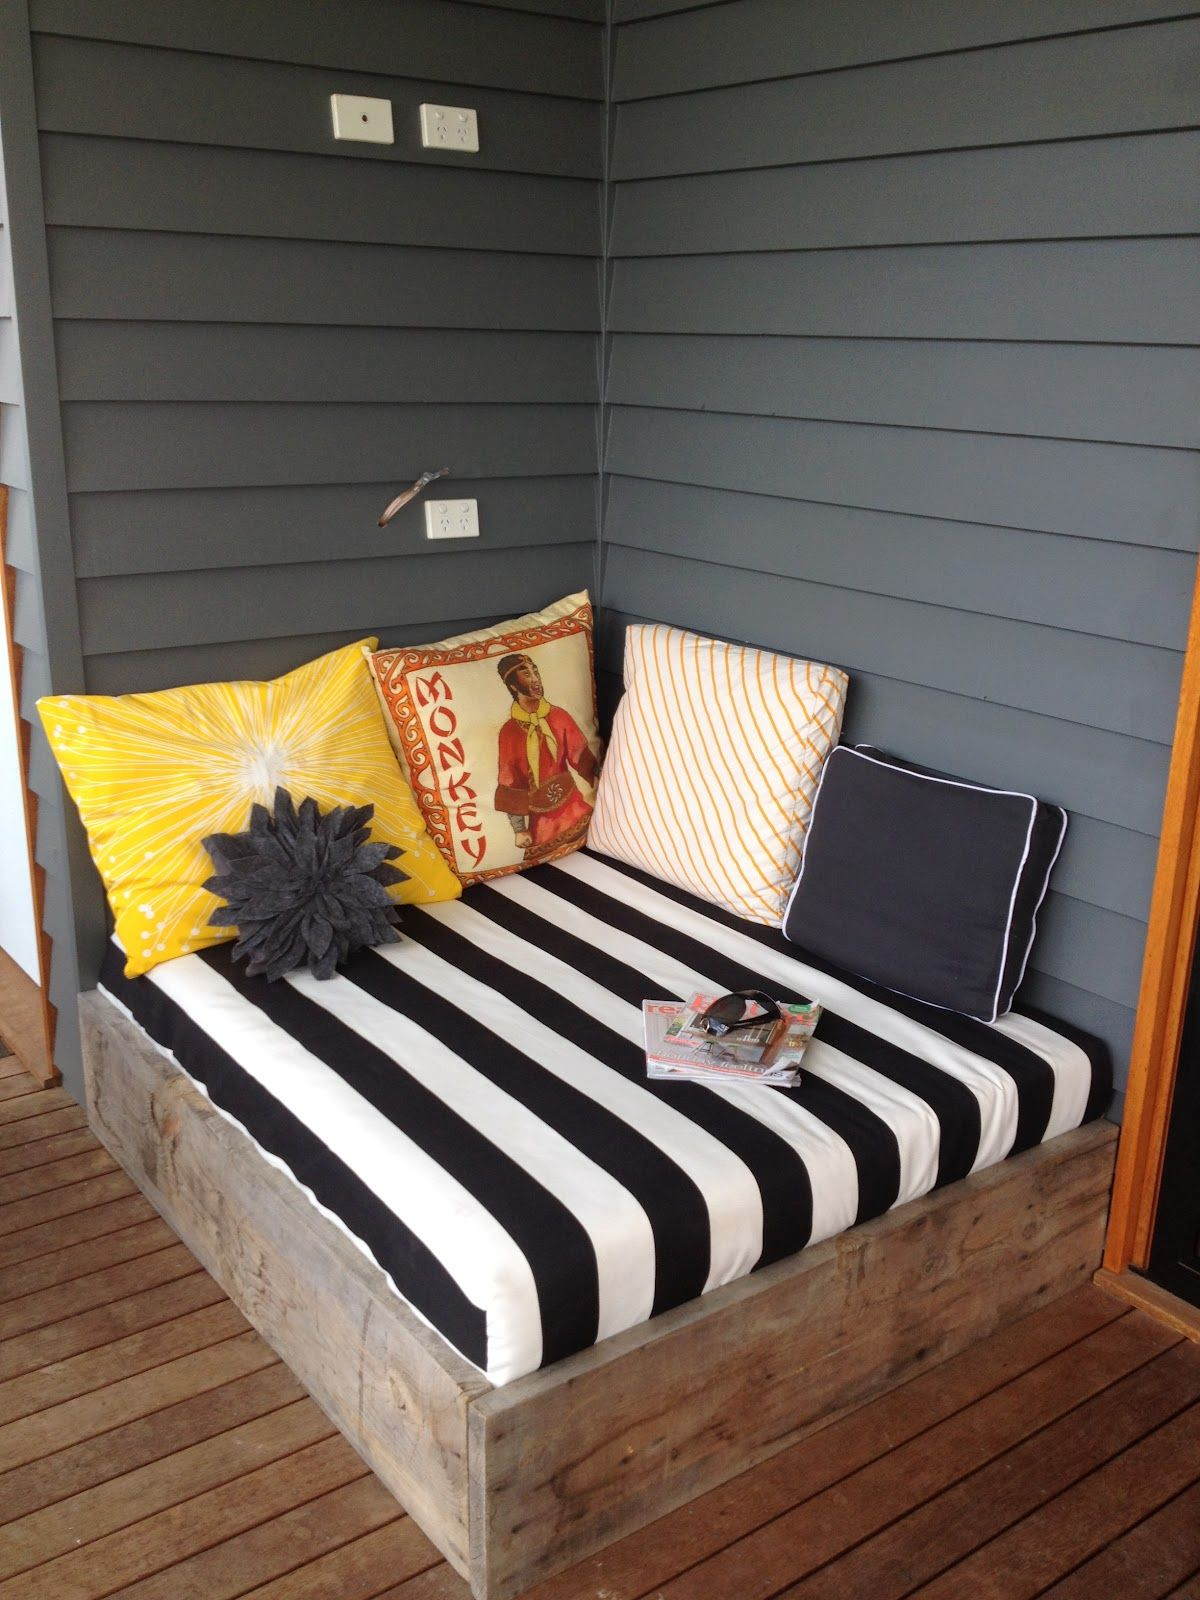 Diy Outdoor Day Bed Reveal Home Decor Home Projects Home